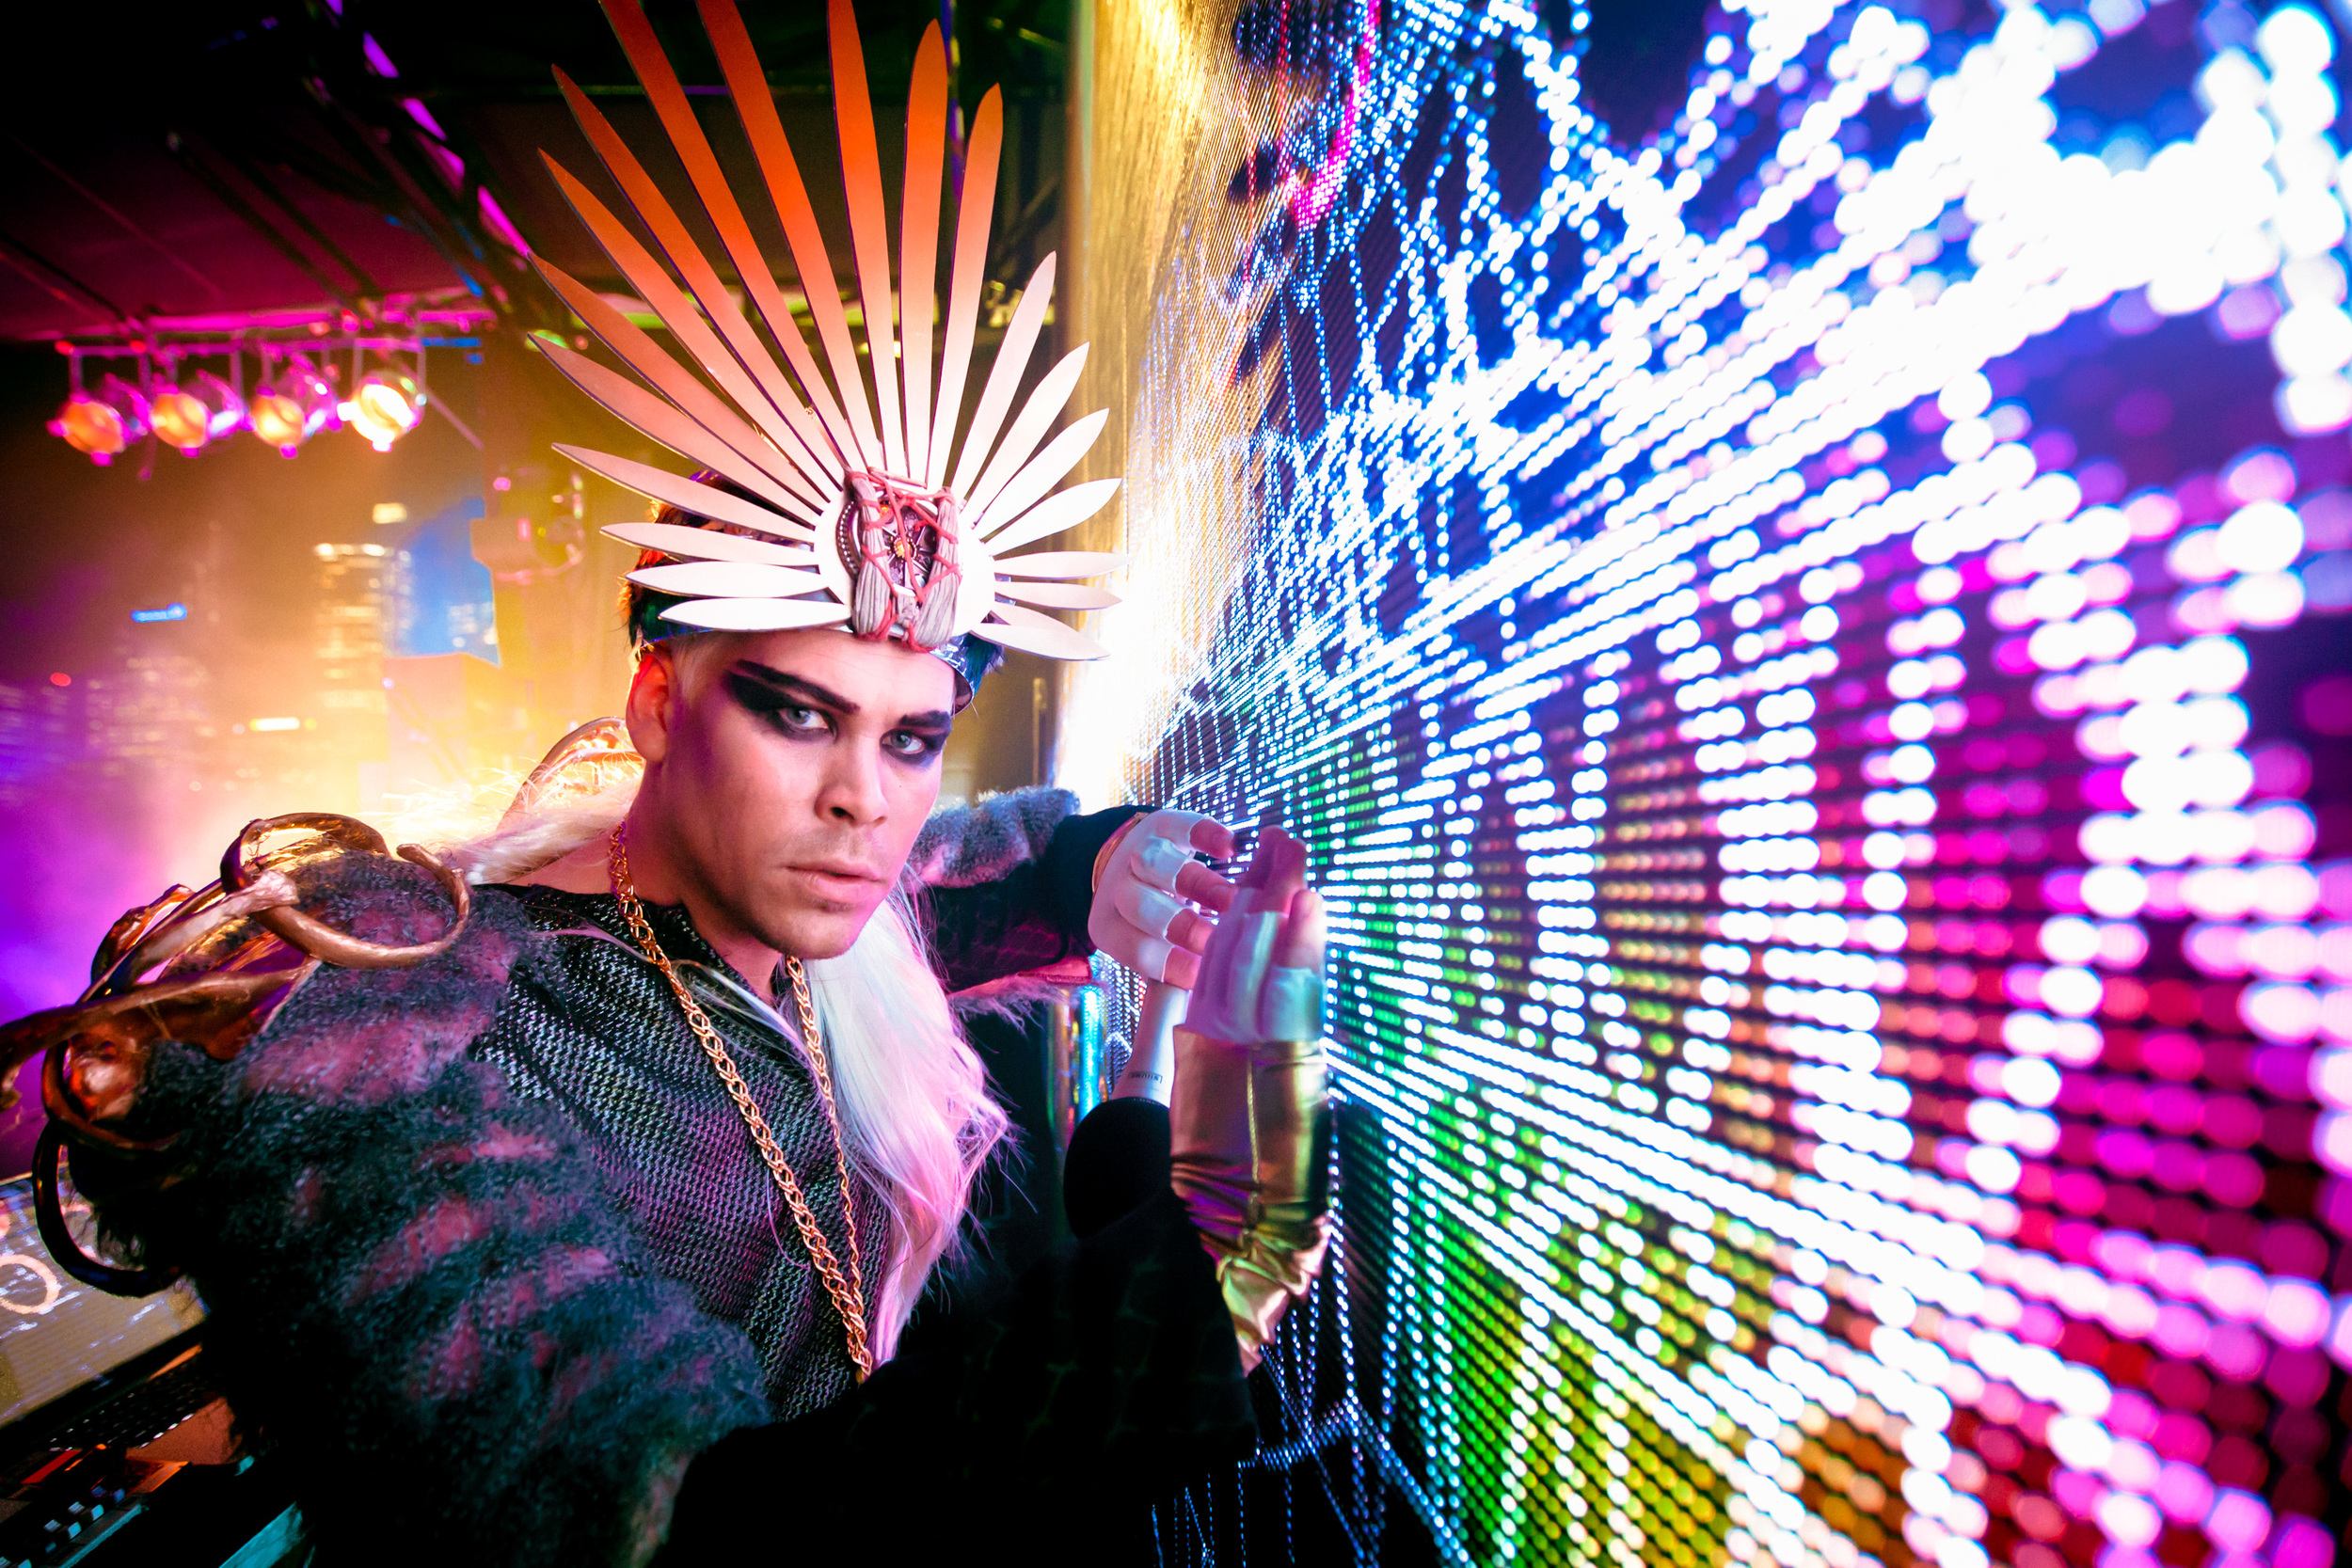 Emperor Luke Steele - Empire of the Sun